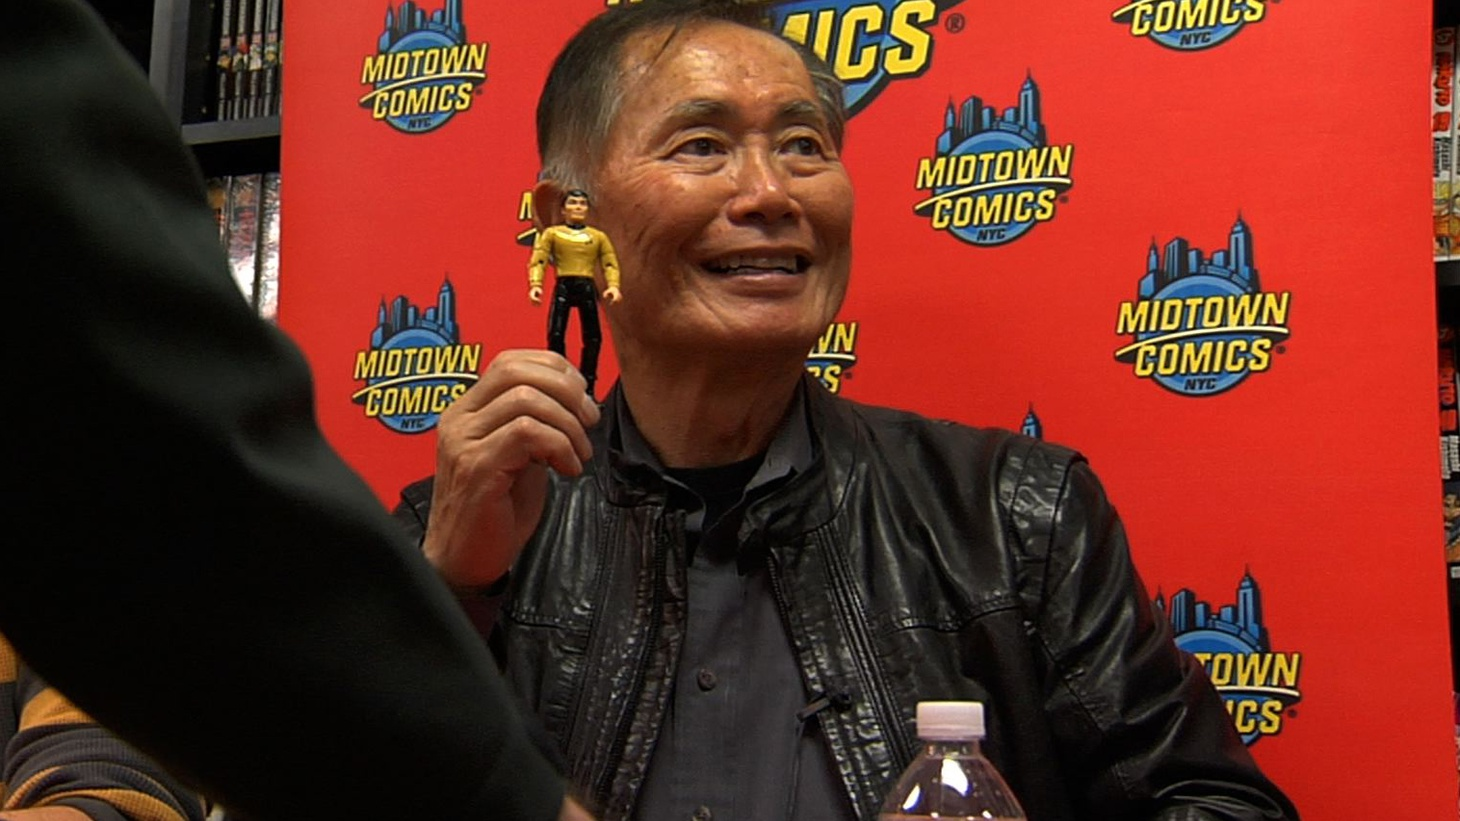 Best known for his role at Lieutenant Sulu on Star Trek, George Takei is now the subject of a new documentary, To Be Takei. The actor and activist talks about the chaos behind the first Star Trek movie and why William Shatner is like the crazy uncle of the Star Trek family.